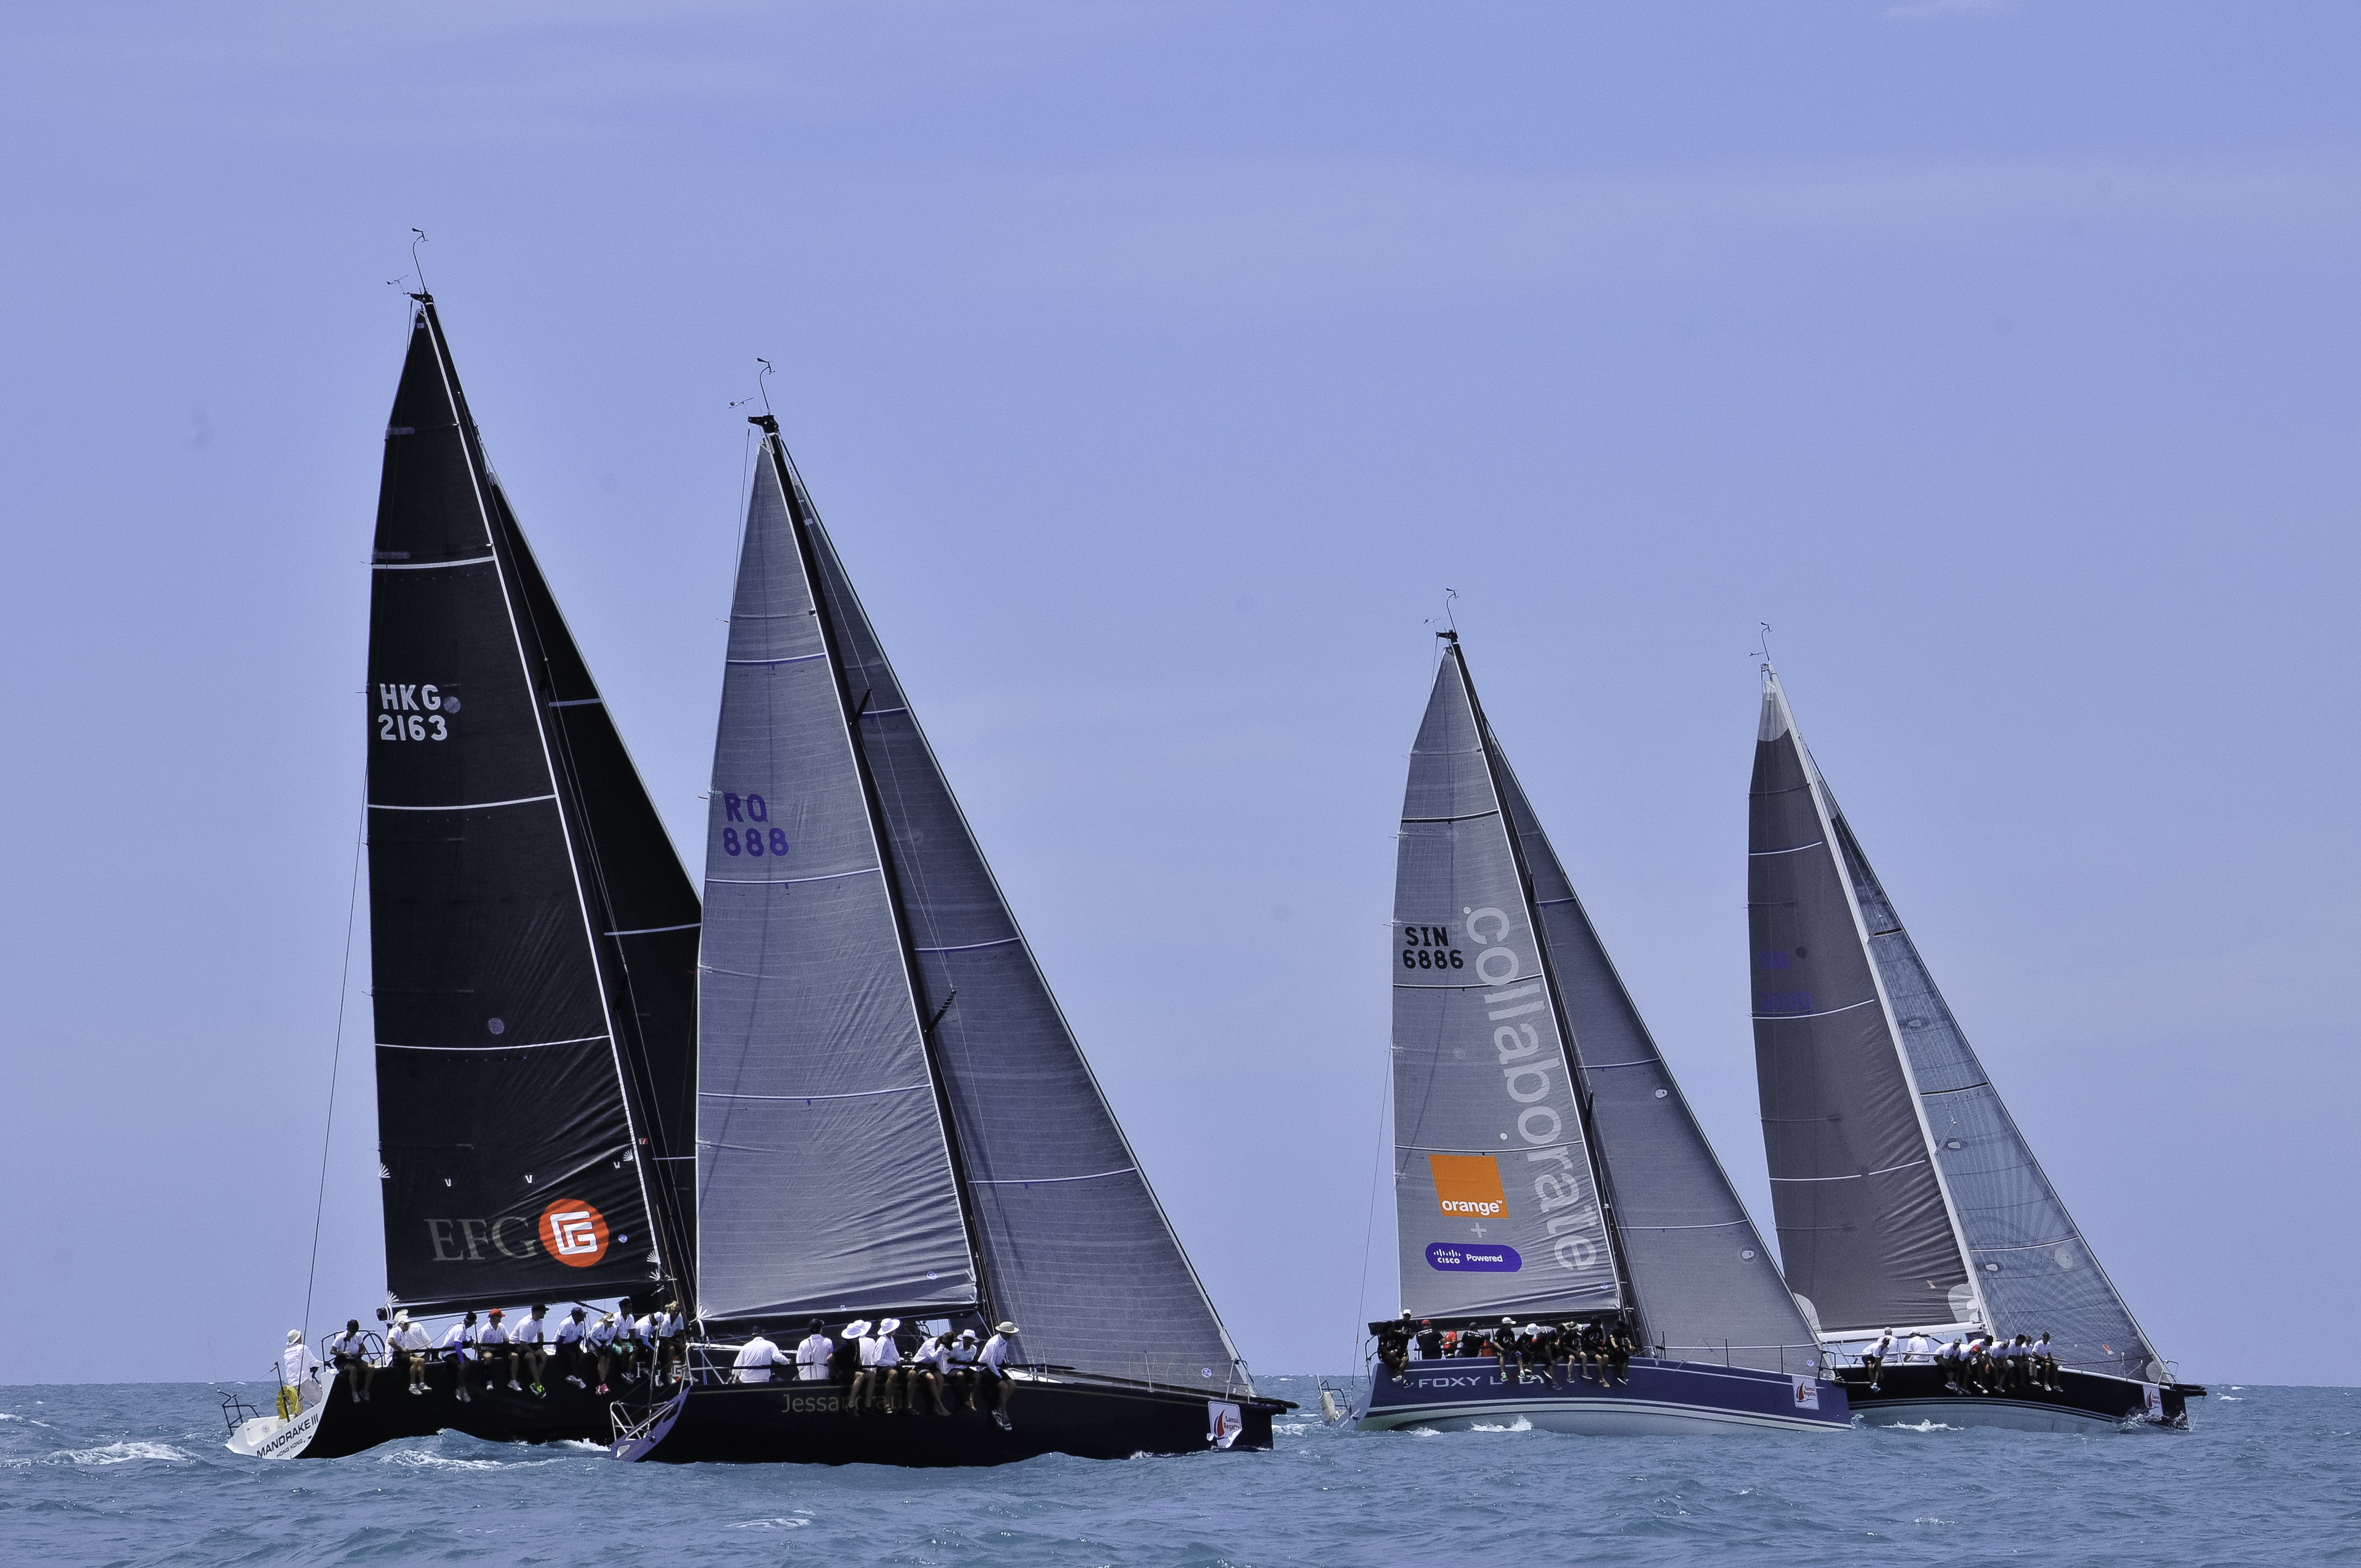 Changing fortunes on Day 1 of Samui Regatta 2015 | Samui Times